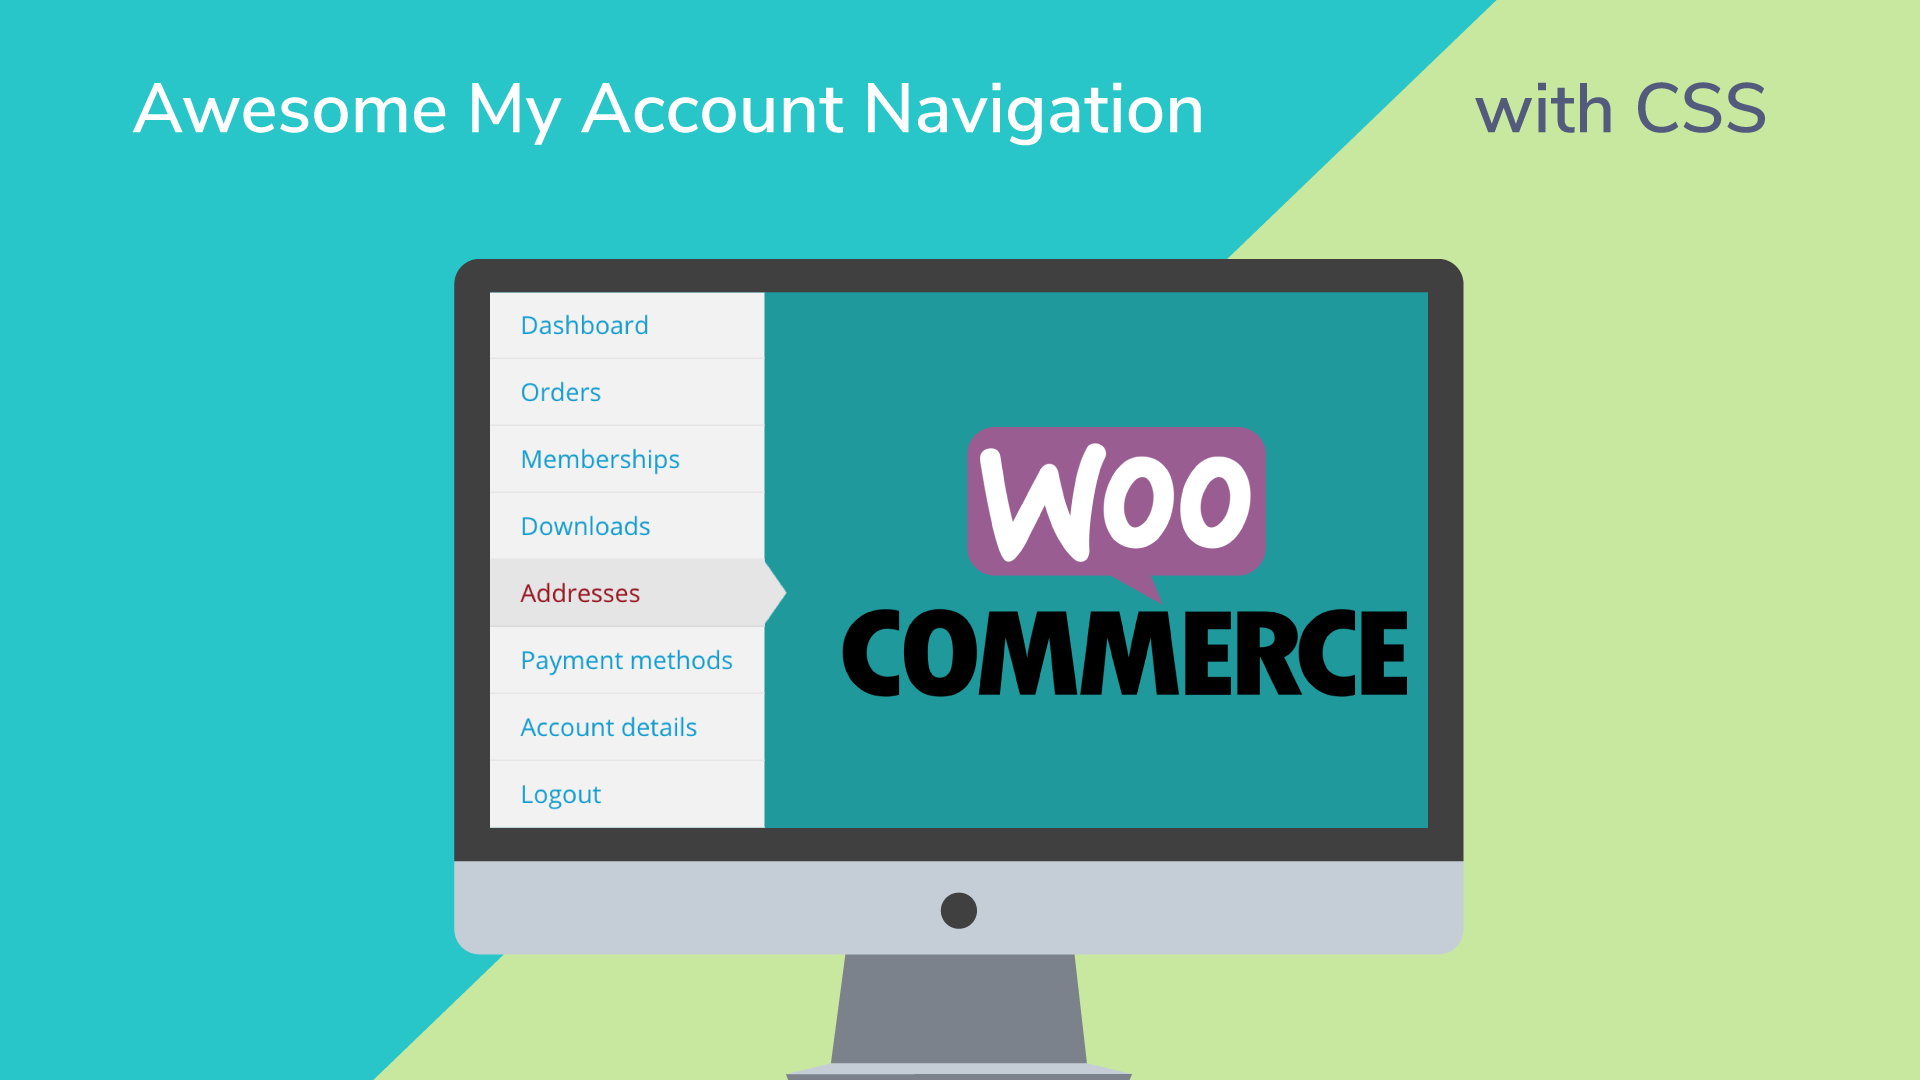 Make the WooCommerce My Account Navigation Look Awesome with CSS